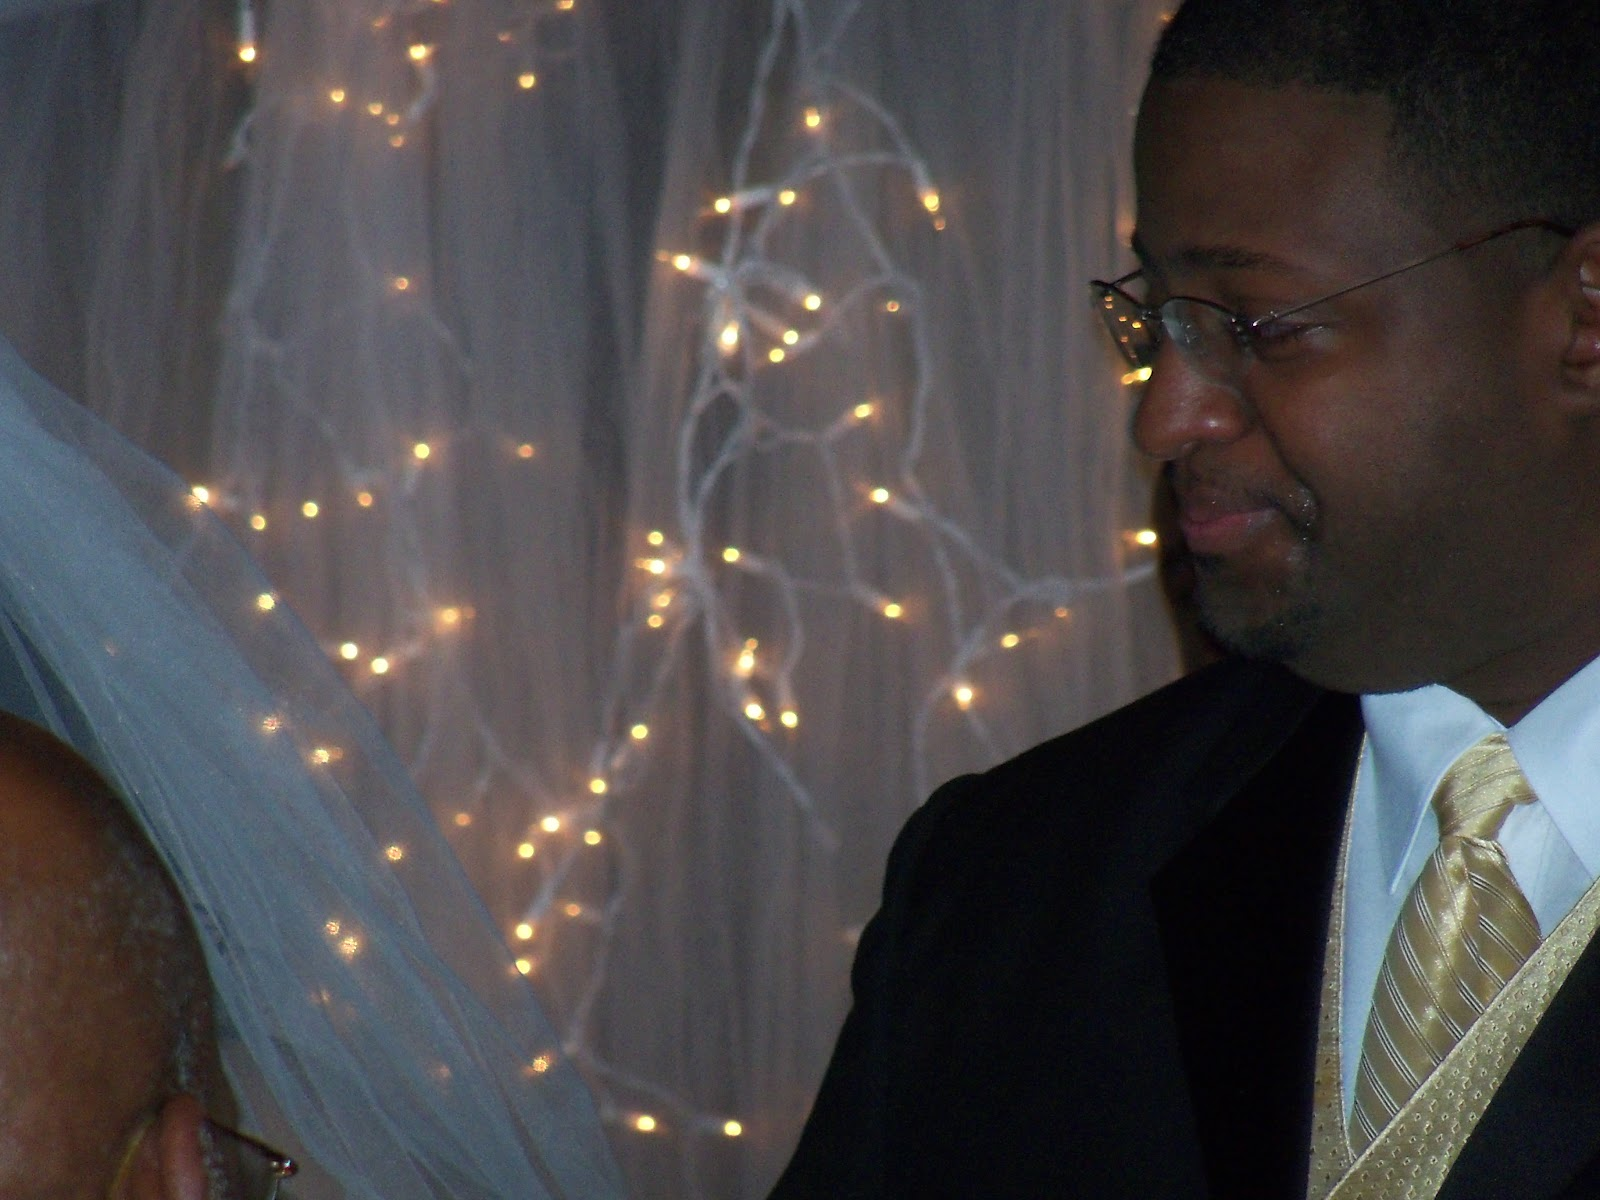 MeChaia Lunn and Clyde Longs wedding - 101_4579.JPG